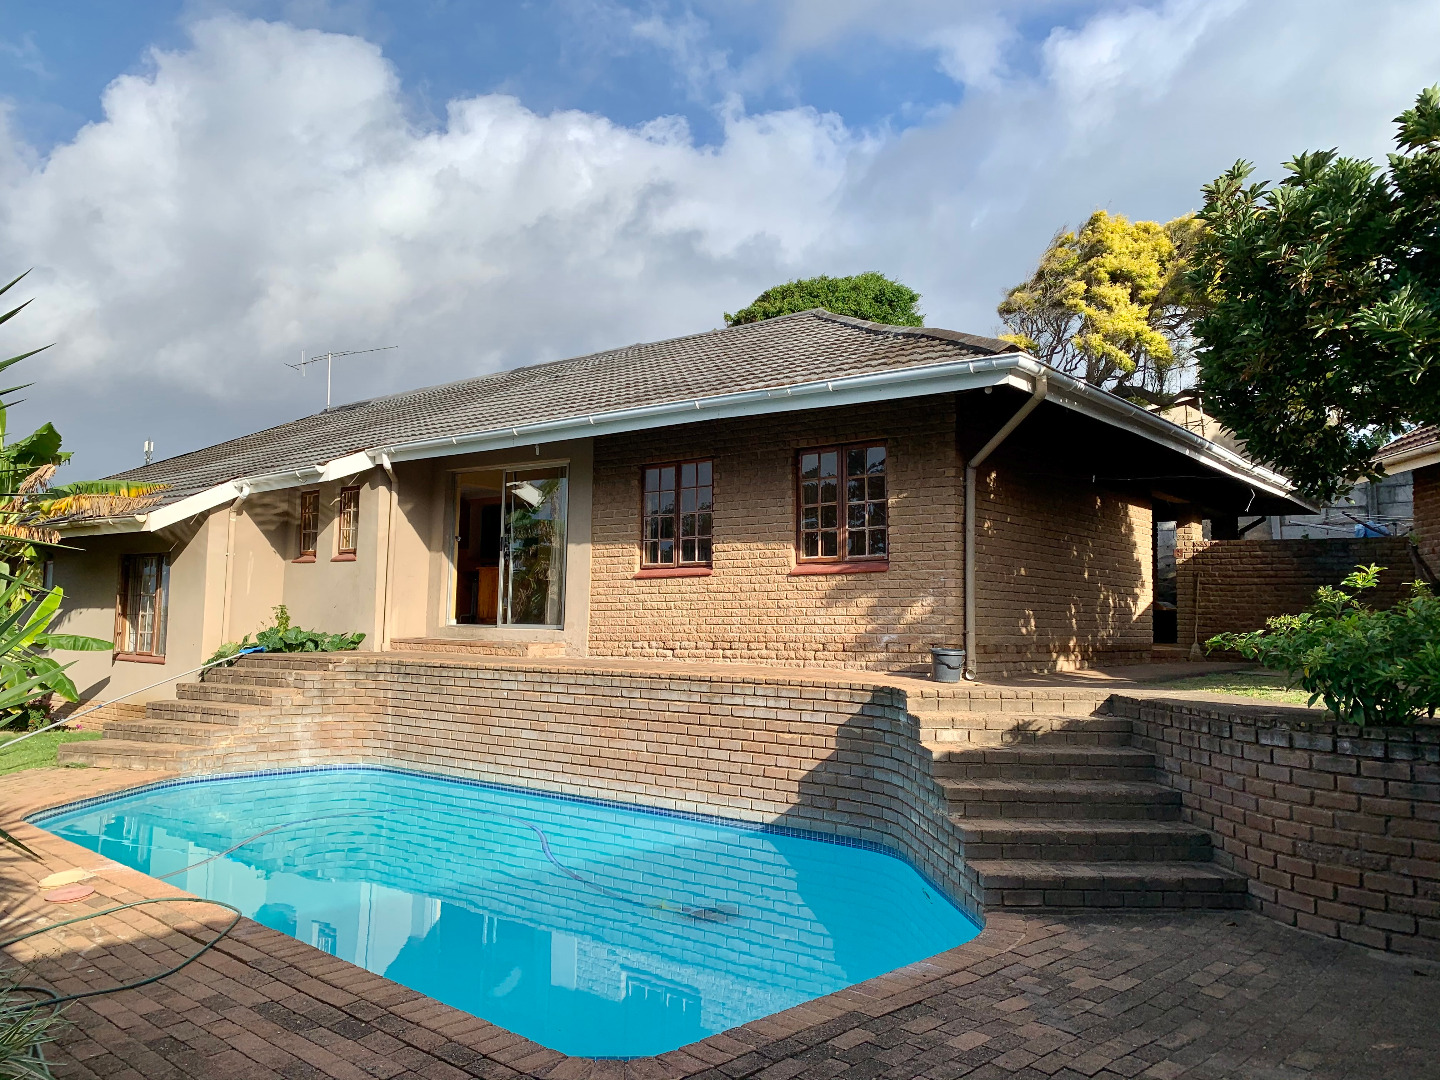 20 Bedroom House For Sale in Melville   RE/MAX™ of Southern Africa